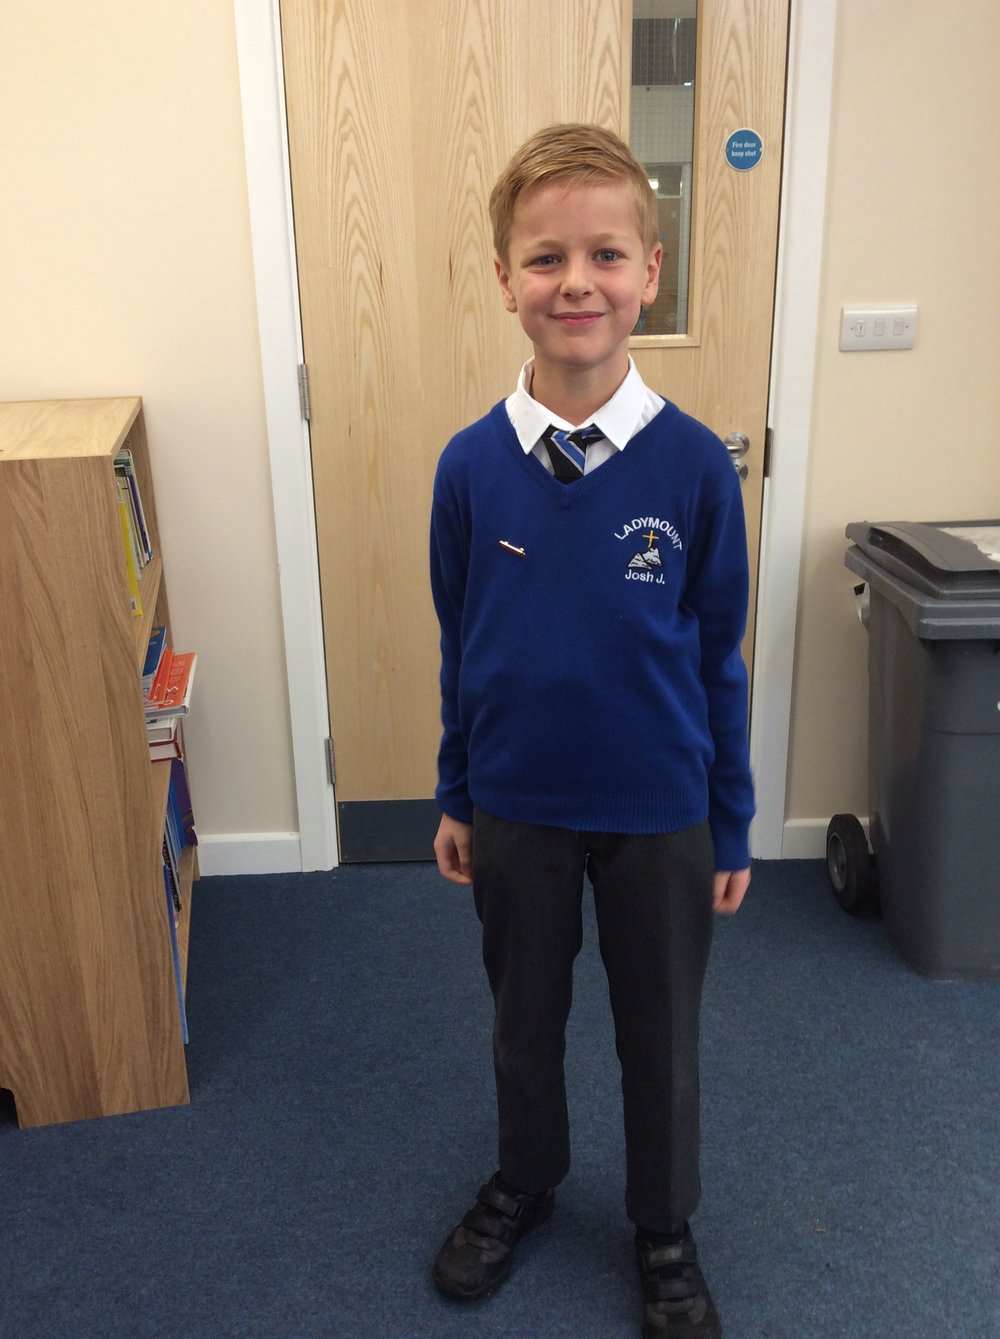 Hello, my name is Joshua from Year 5 and I am the elected Chair of Ladymount School Council. I am responsible for leading the meetings and I shall make sure that everyone's voice is heard.